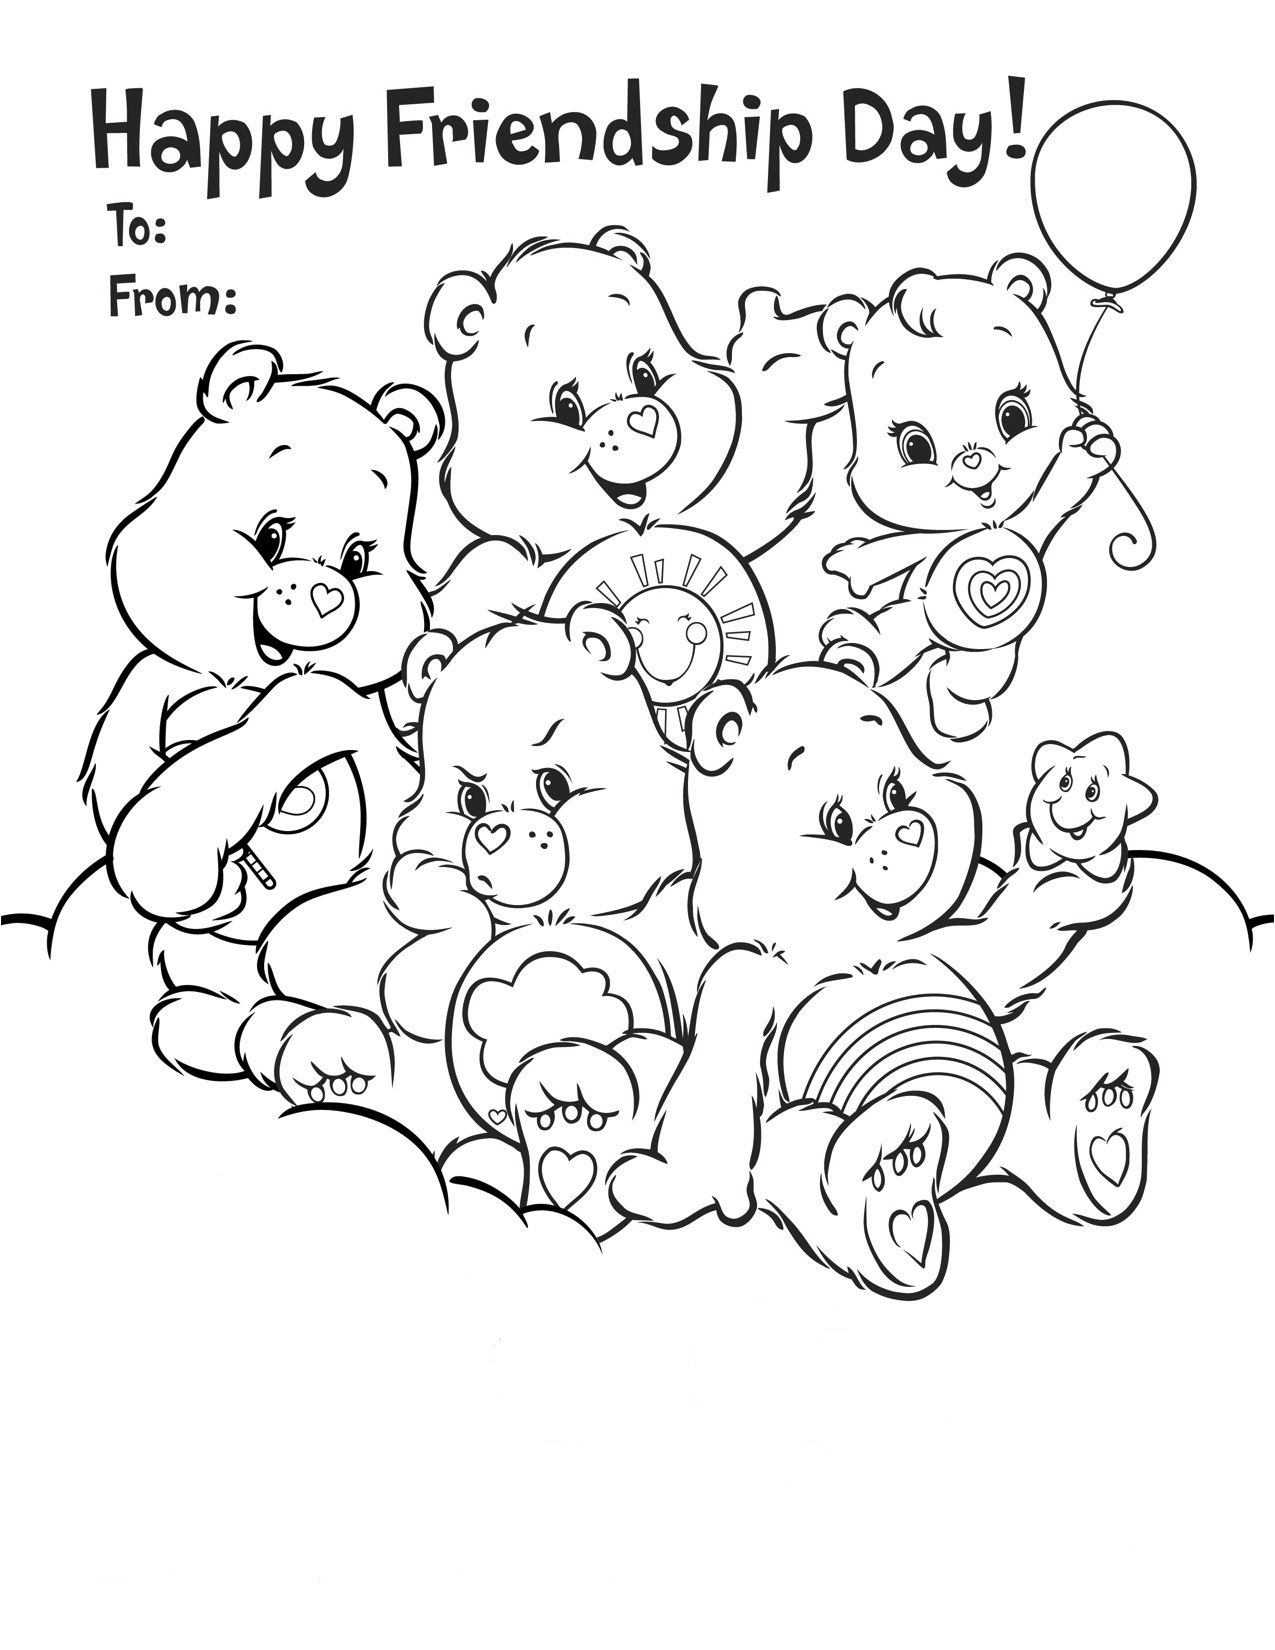 Friendship+Coloring+Pages+Printable | Coloring Pages | Pinterest - Free Printable Bff Coloring Pages